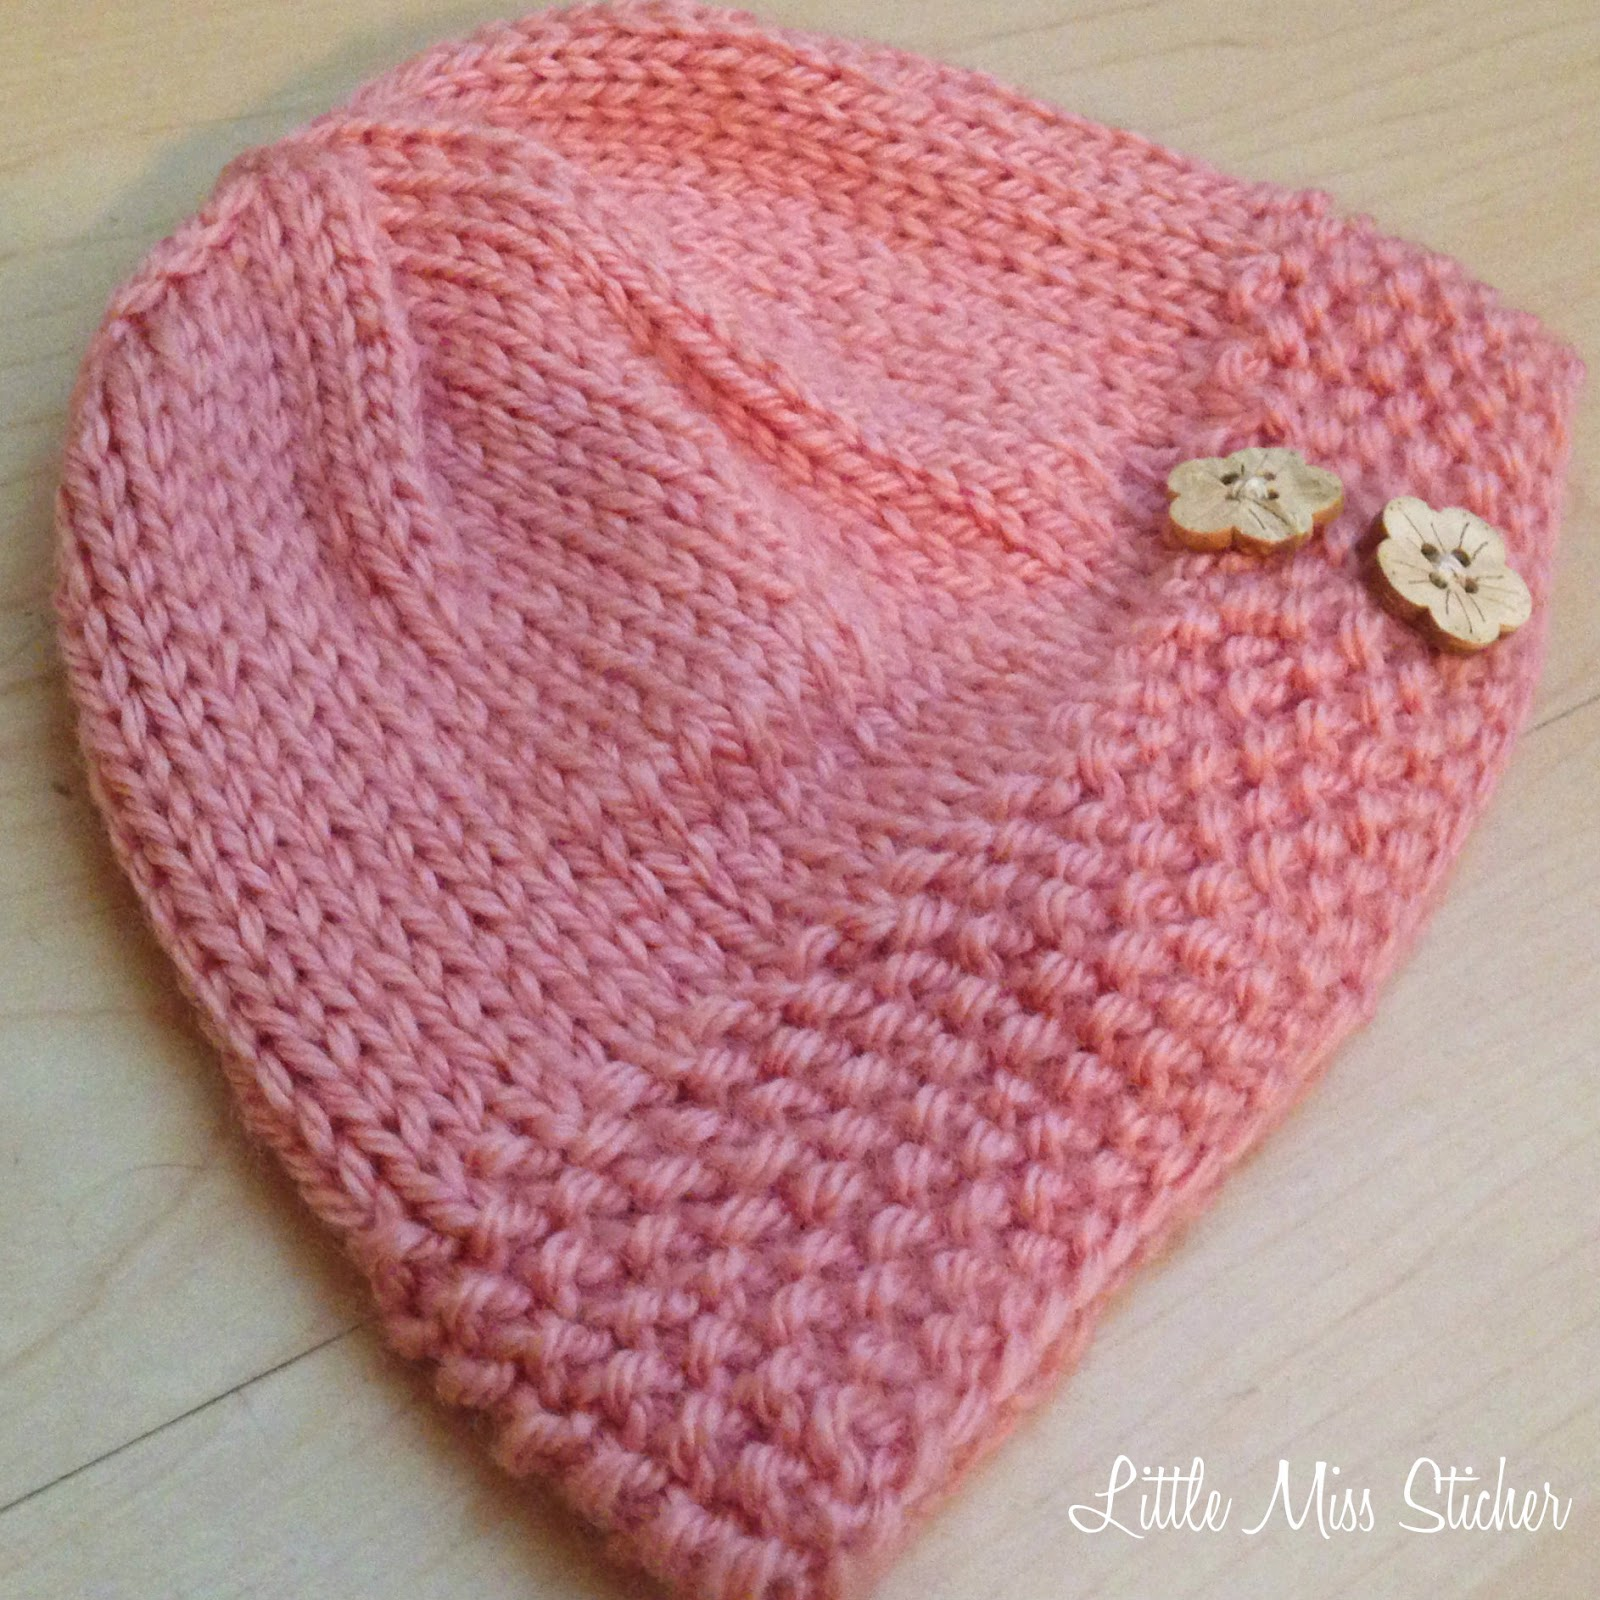 Knitted Infant Hat Patterns : Little Miss Stitcher: Bitty Beanie Free Knit Pattern